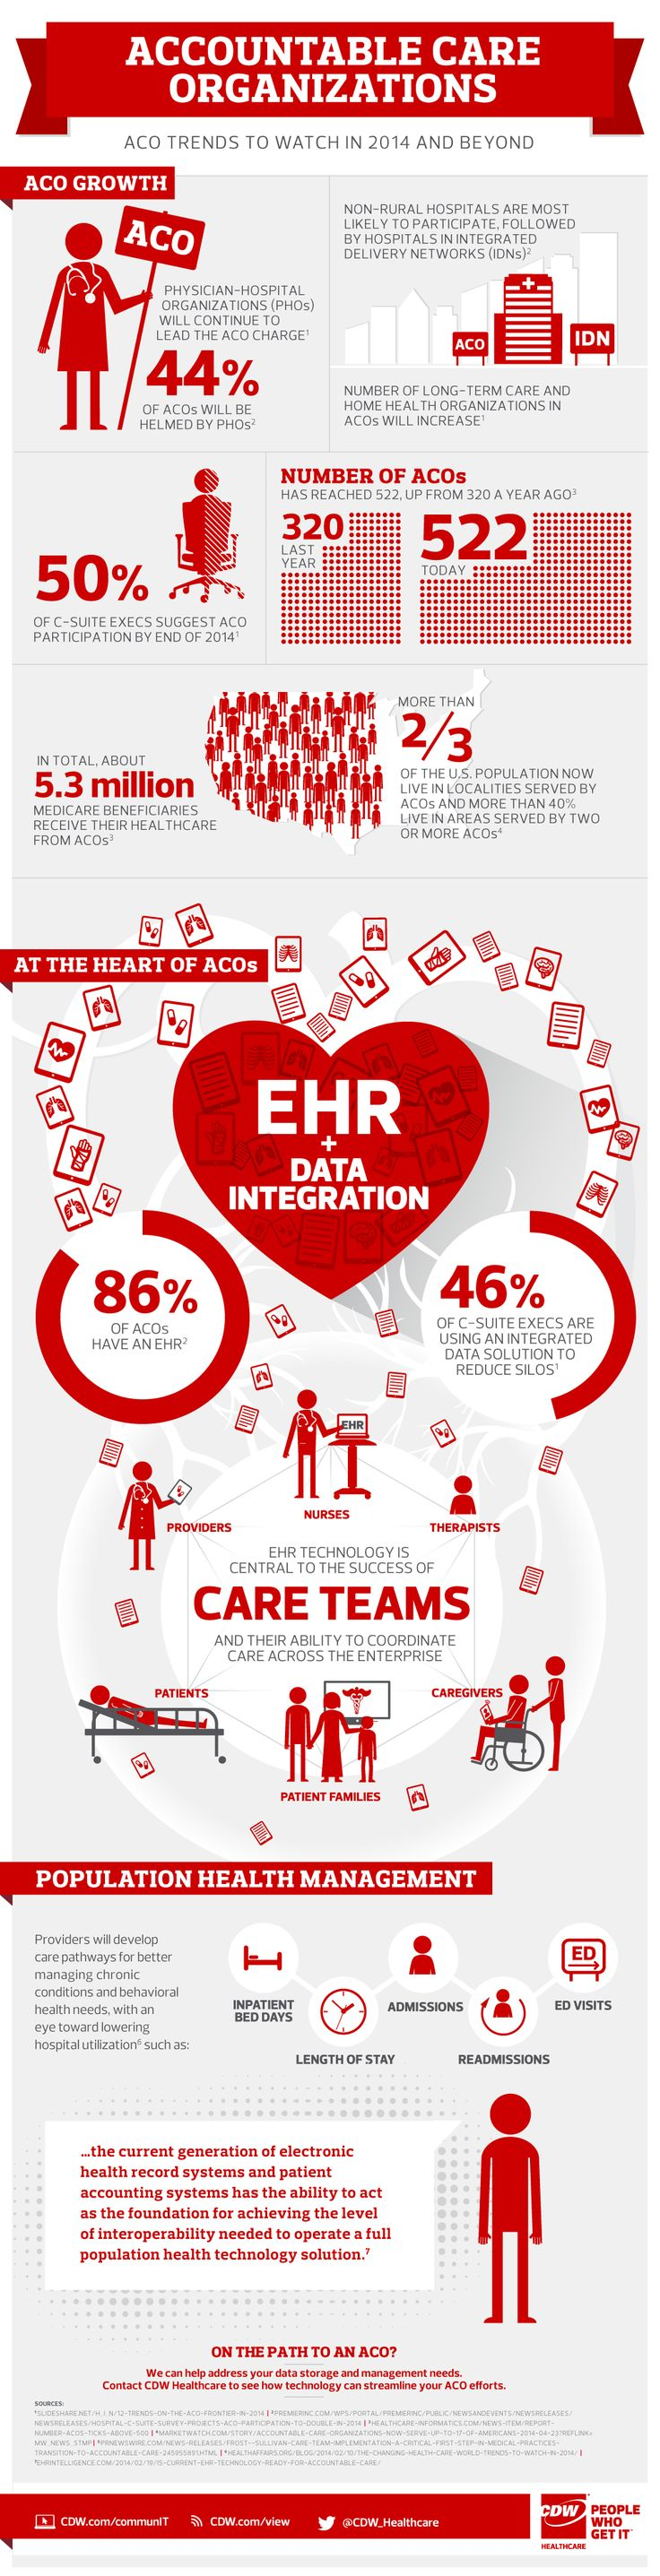 Infographic: With the shifting reimbursement landscape and growing emphasis on coordinated, quality care, ACOs are becoming a force to be reckoned with. CDW.com/view